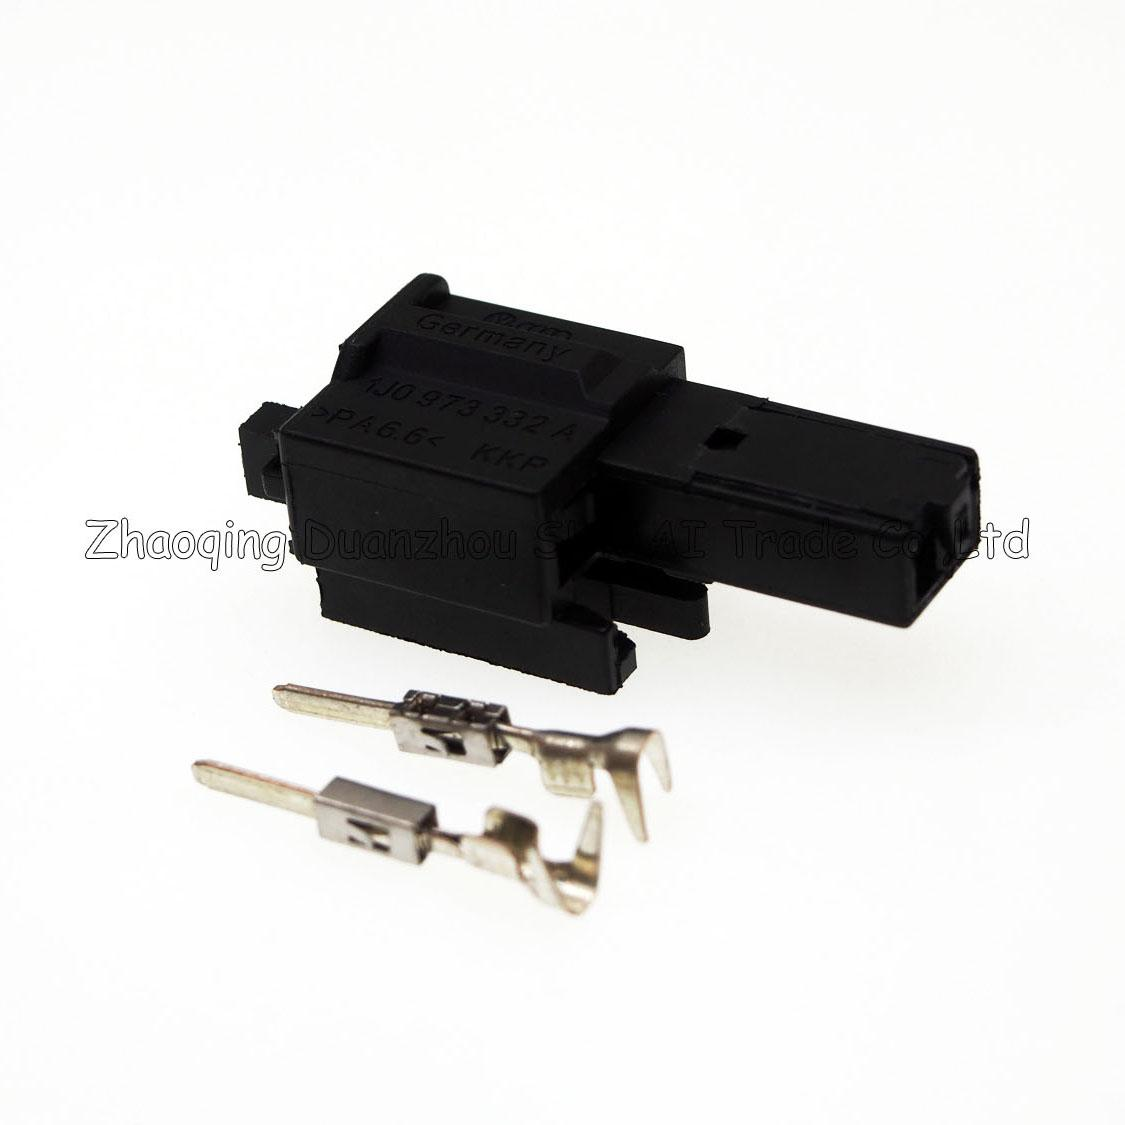 Genuine VW Plug Connecteur 1J0 973 332